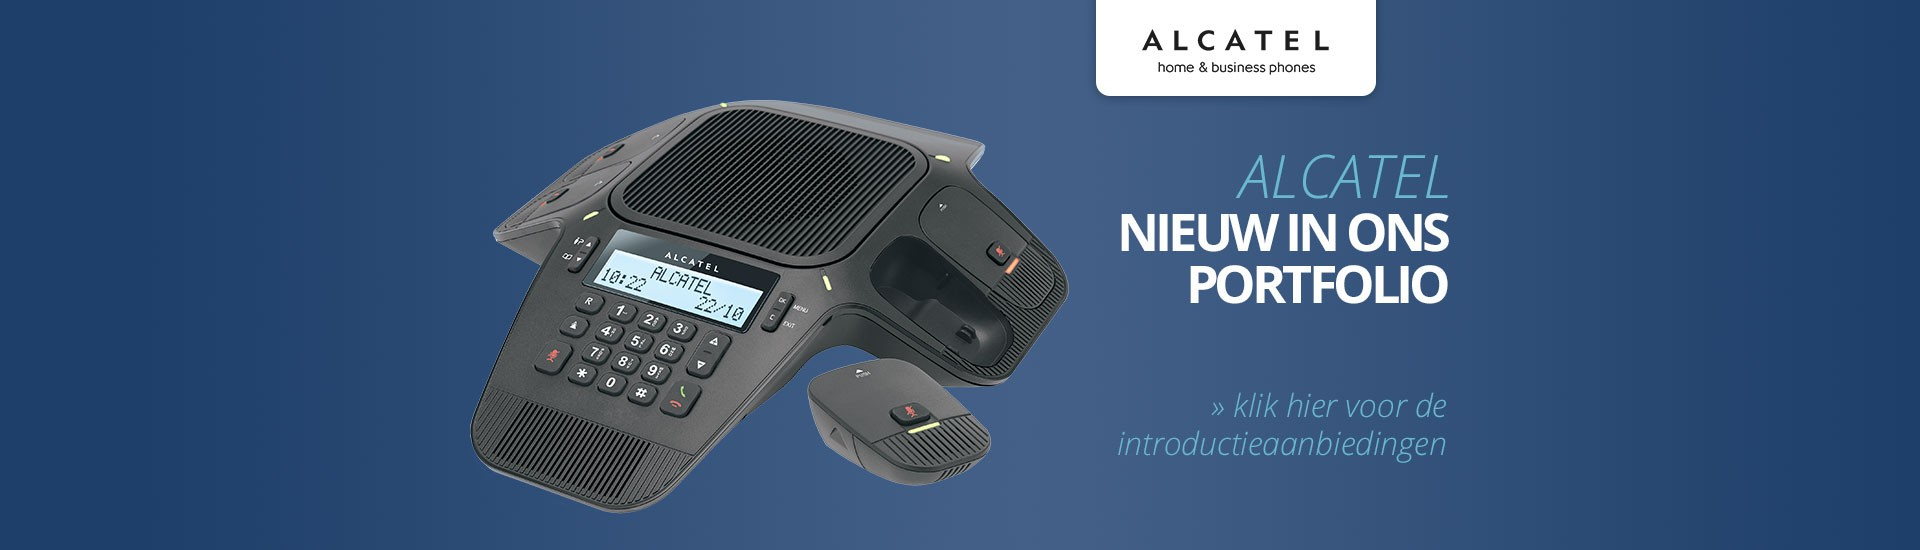 conferencing products alcatel